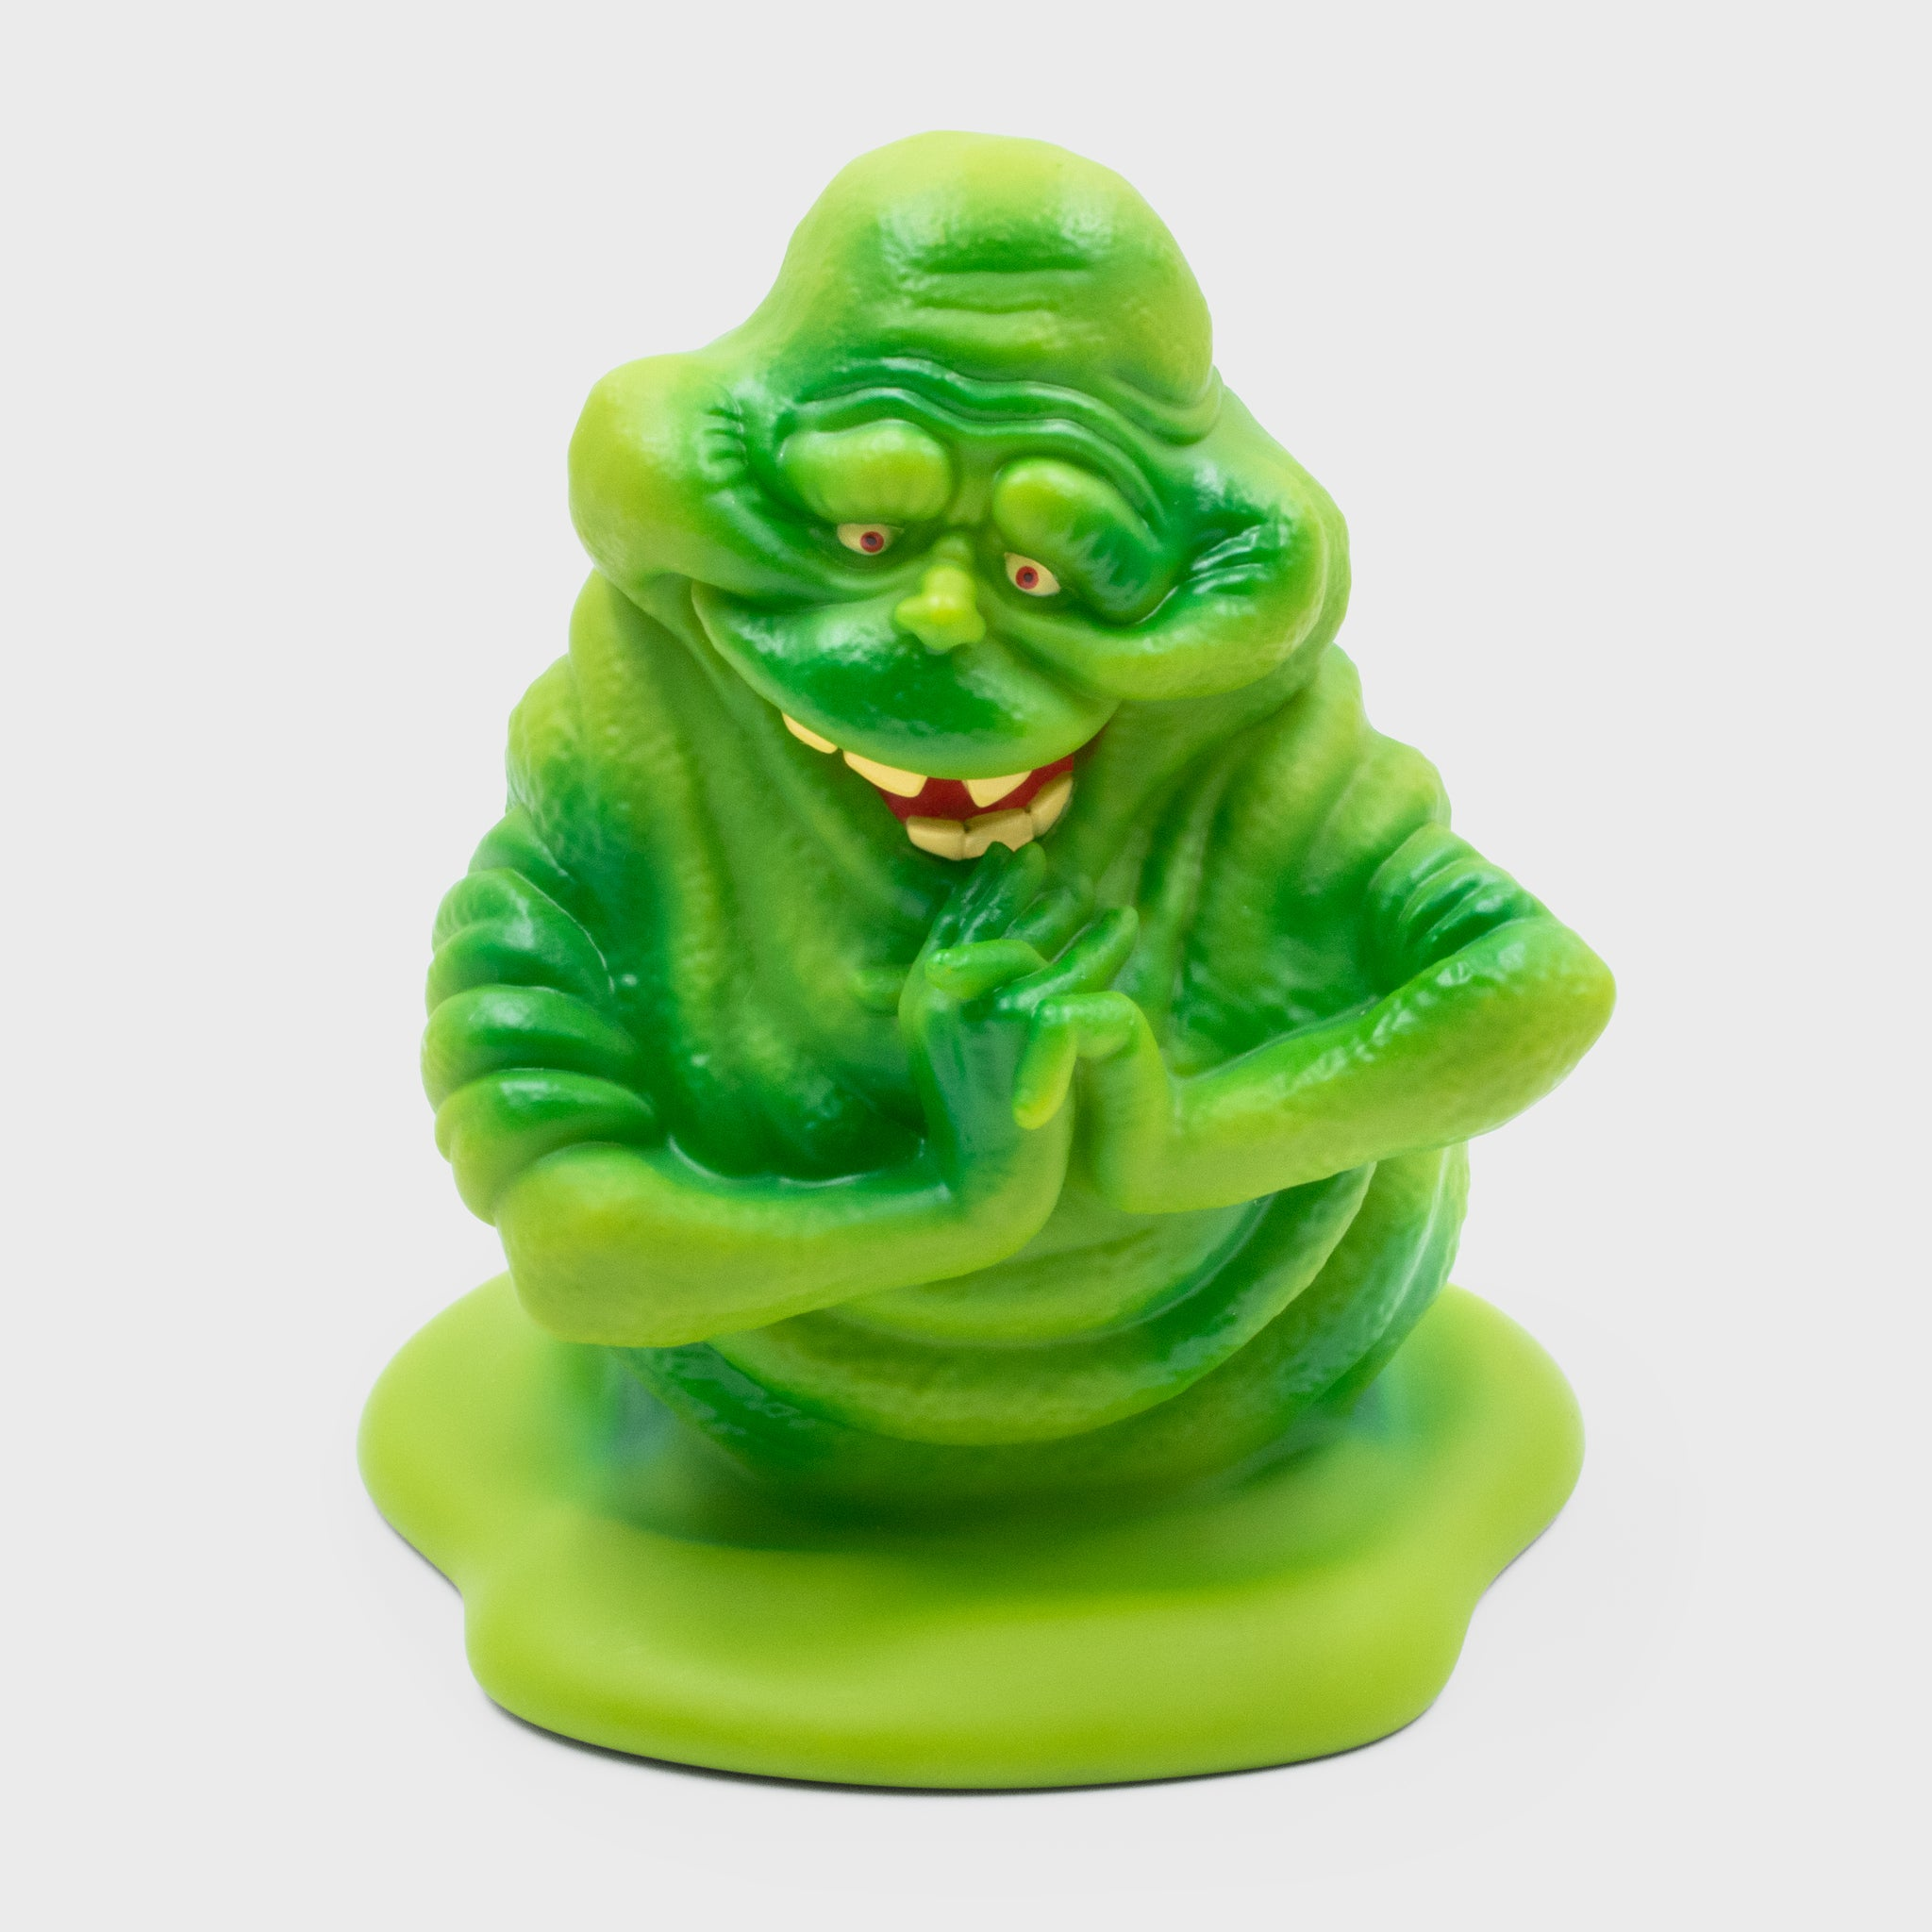 ghostbusters classic 35th anniversary movie ghosts slimer collectors box exclusive collectible culturefly slimer vinyl figure